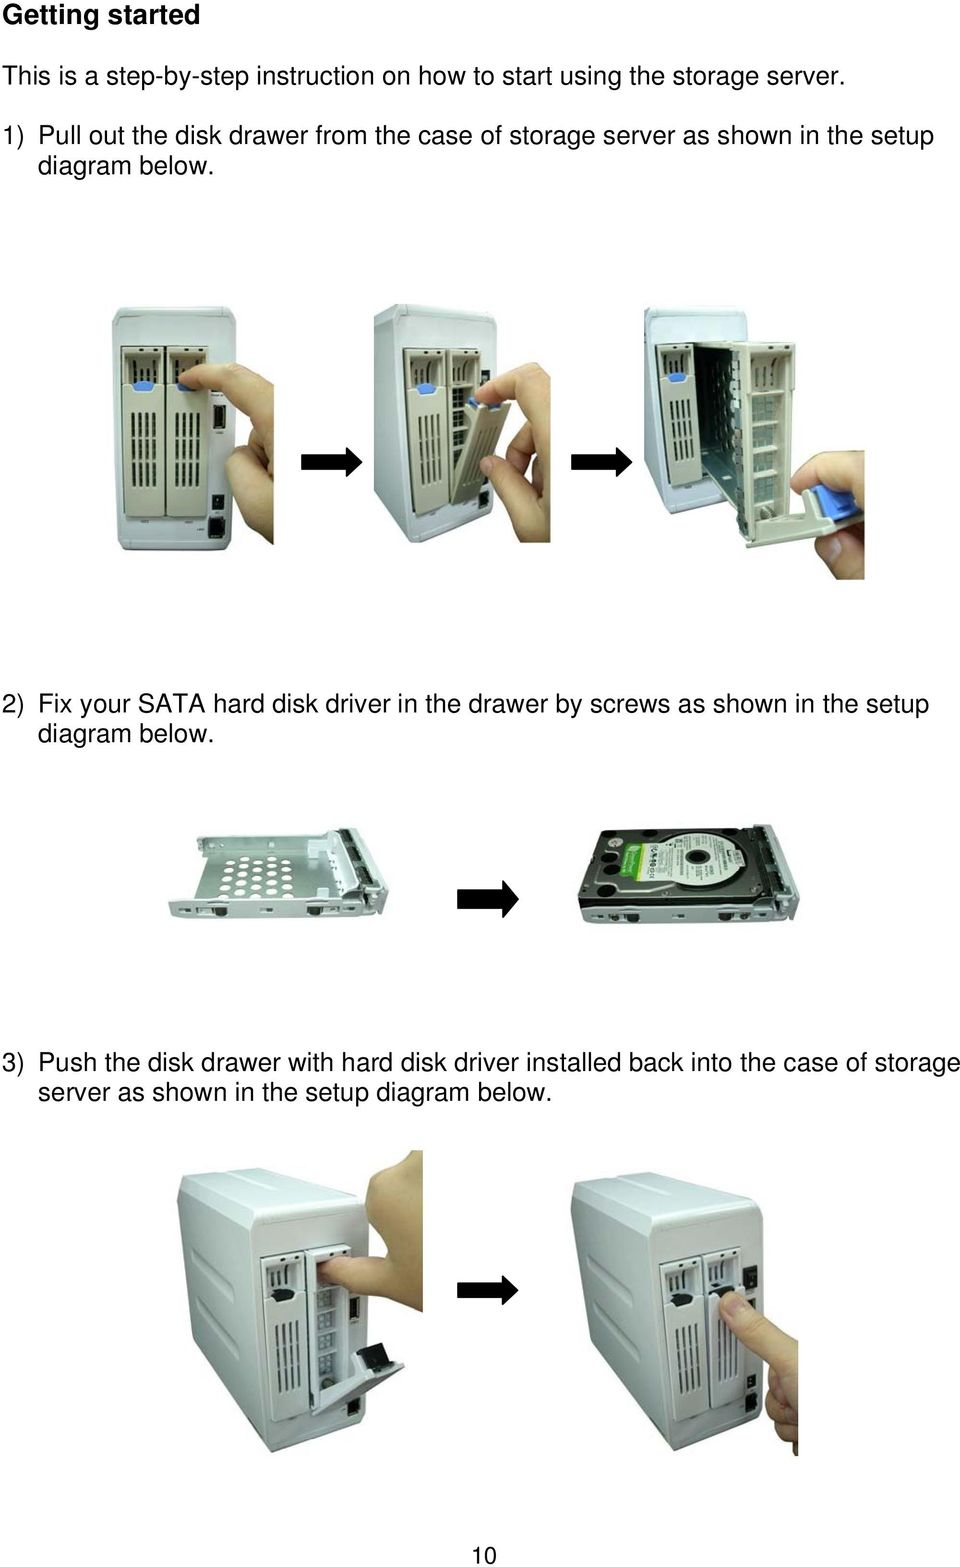 2) Fix your SATA hard disk driver in the drawer by screws as shown in the setup diagram below.